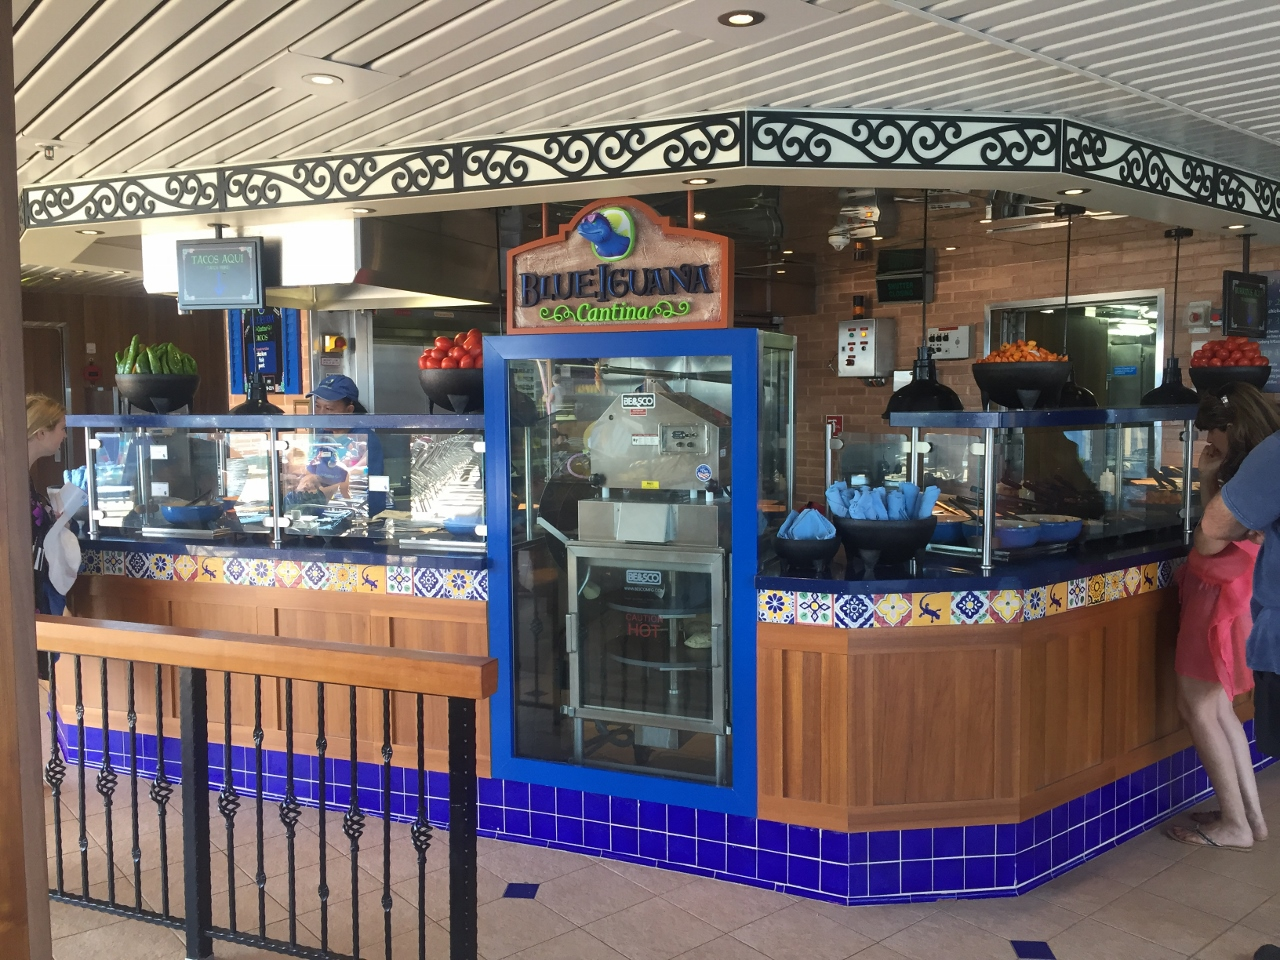 Carnival Spirit serves Mexican food at BlueIguana Mexican Cantina.